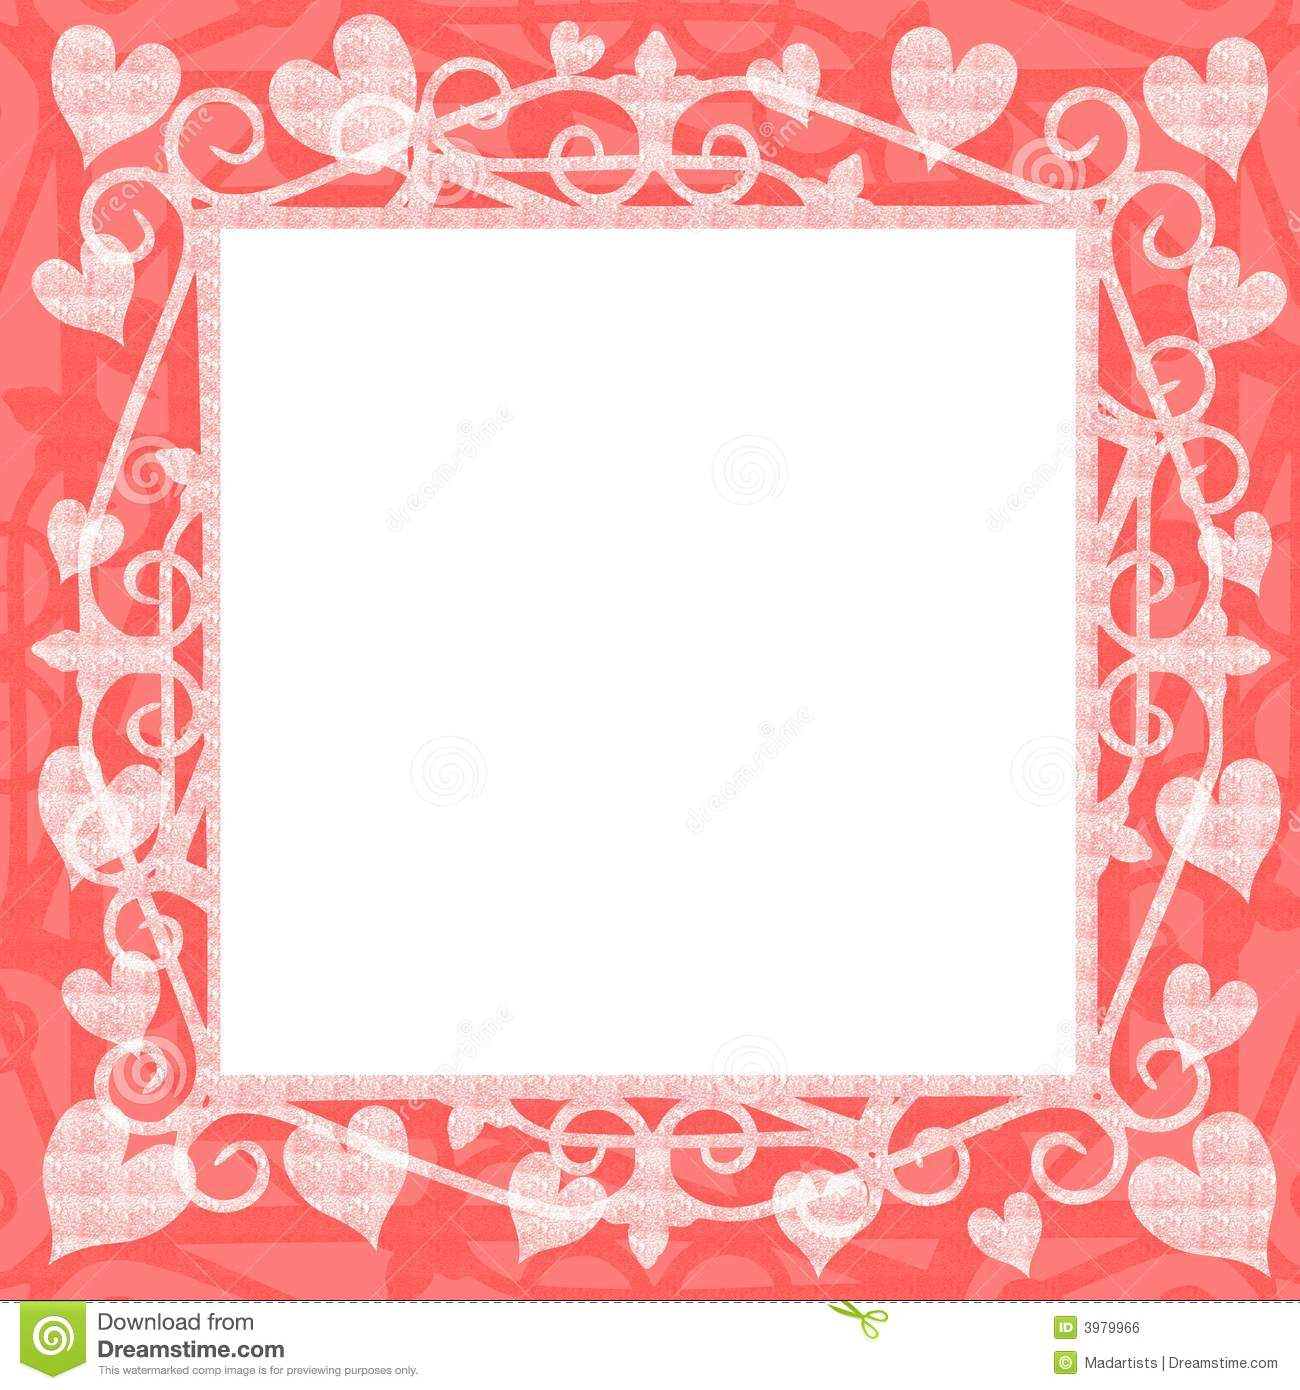 light pink hearts square frame